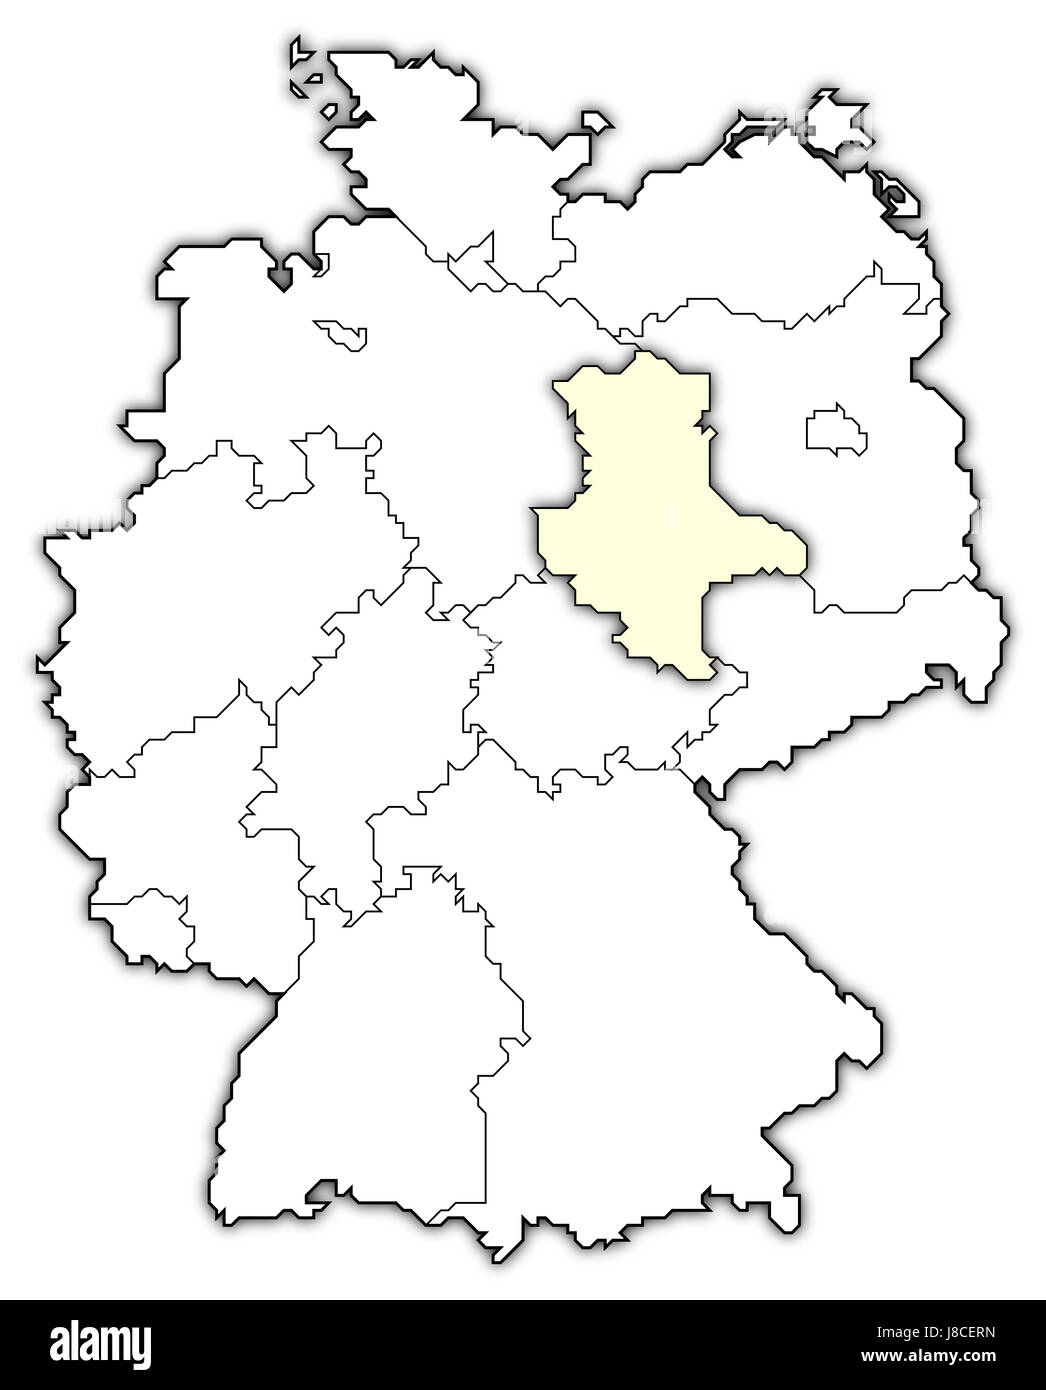 map of germany,saxony-anhalt highlighted - Stock Image